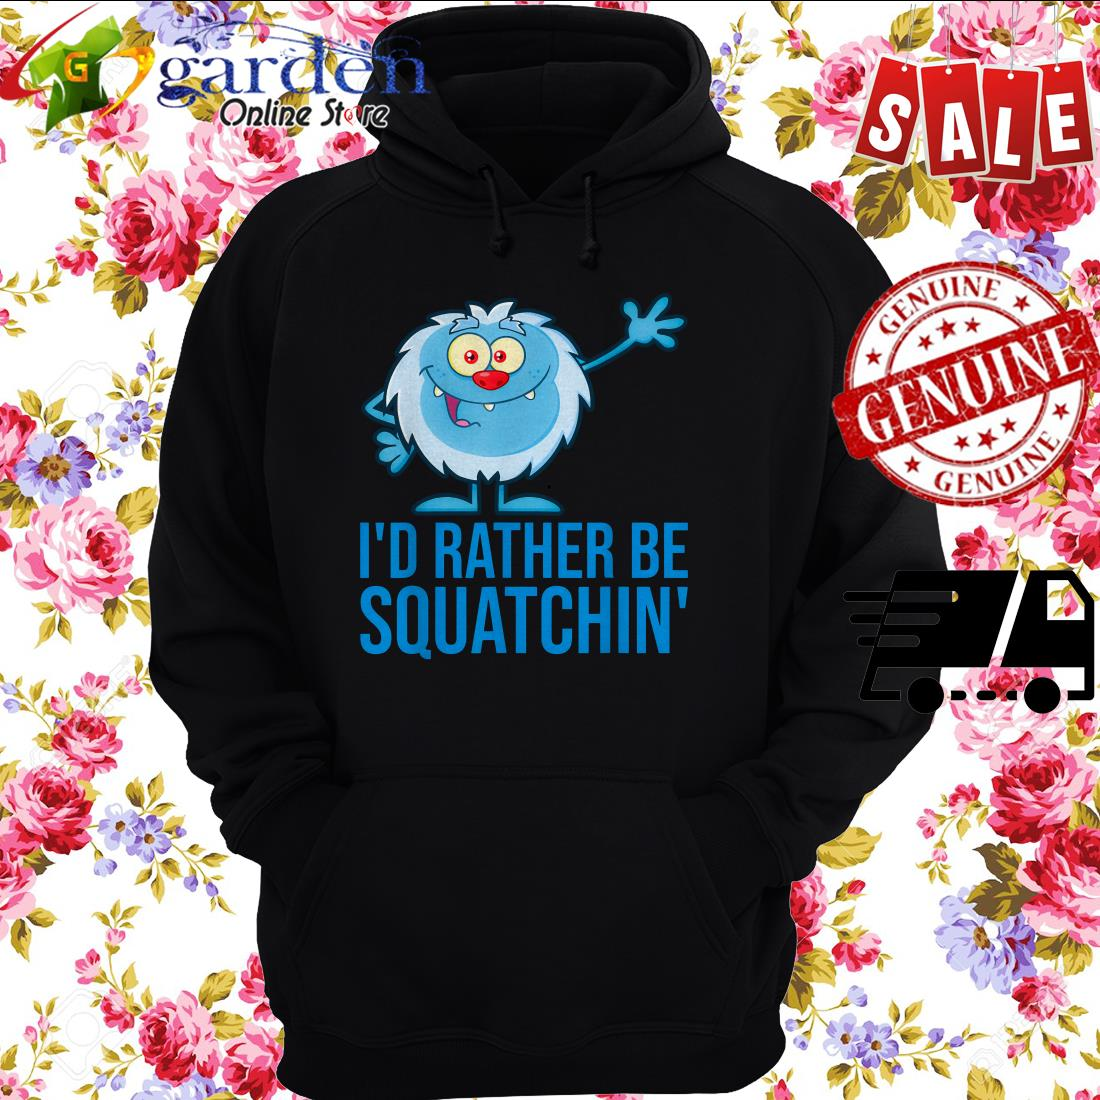 I'D RATHER BE SQUATCHIN' hoodie